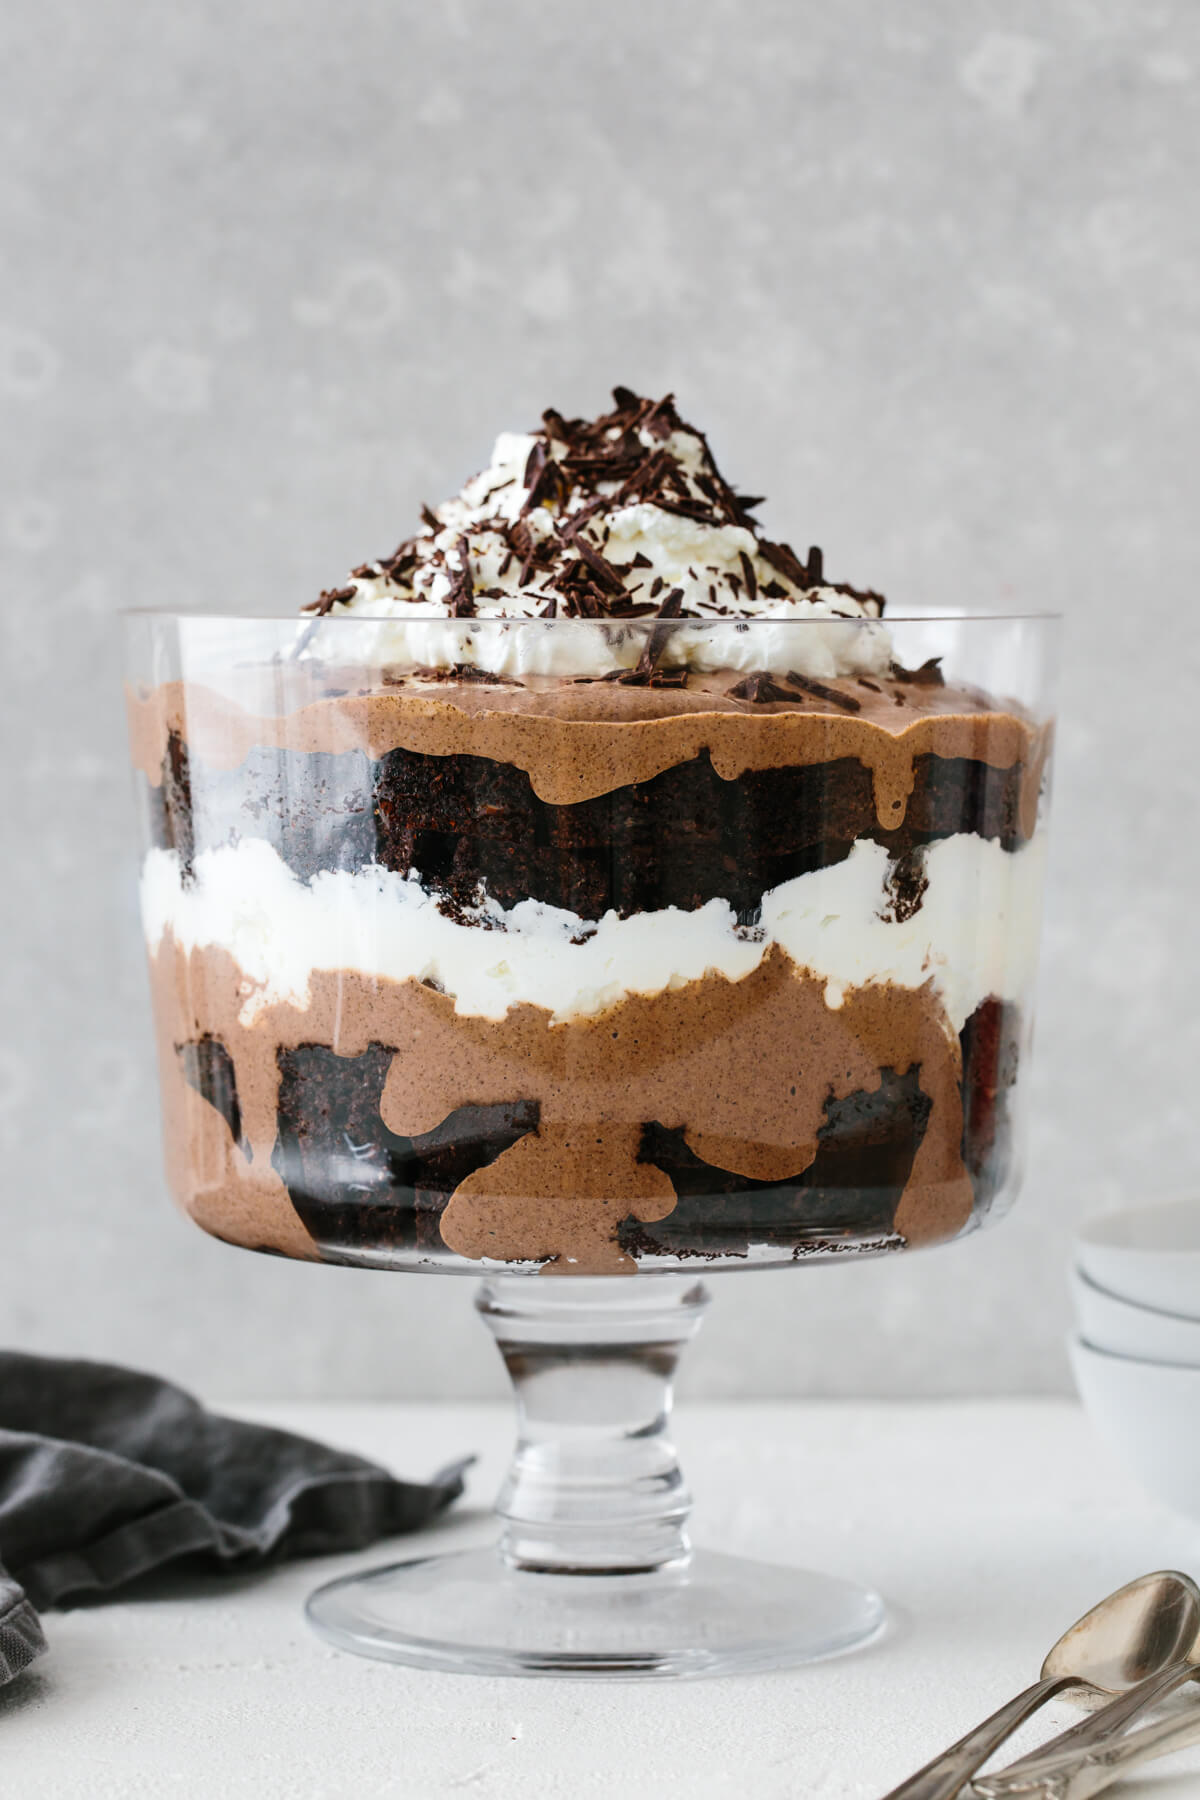 A layered brownie trifle in a trifle bowl.